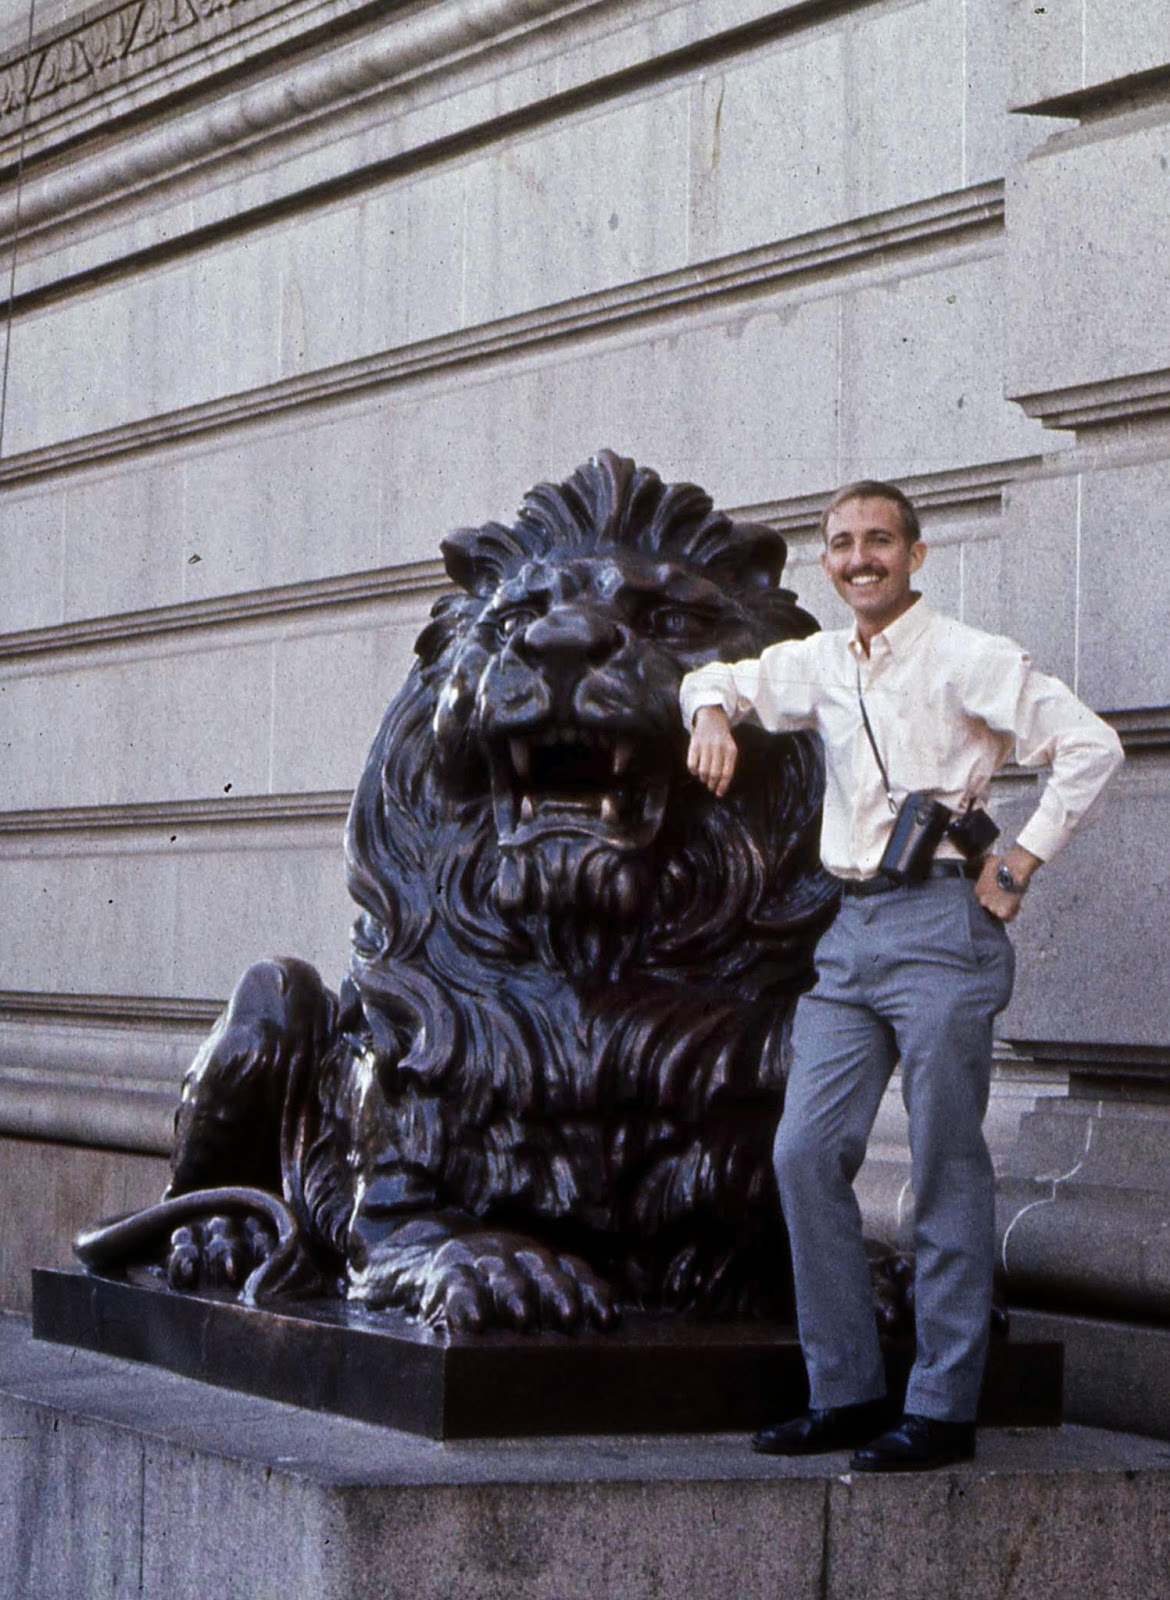 HSBC Bank Lion - Hong Kong 1969